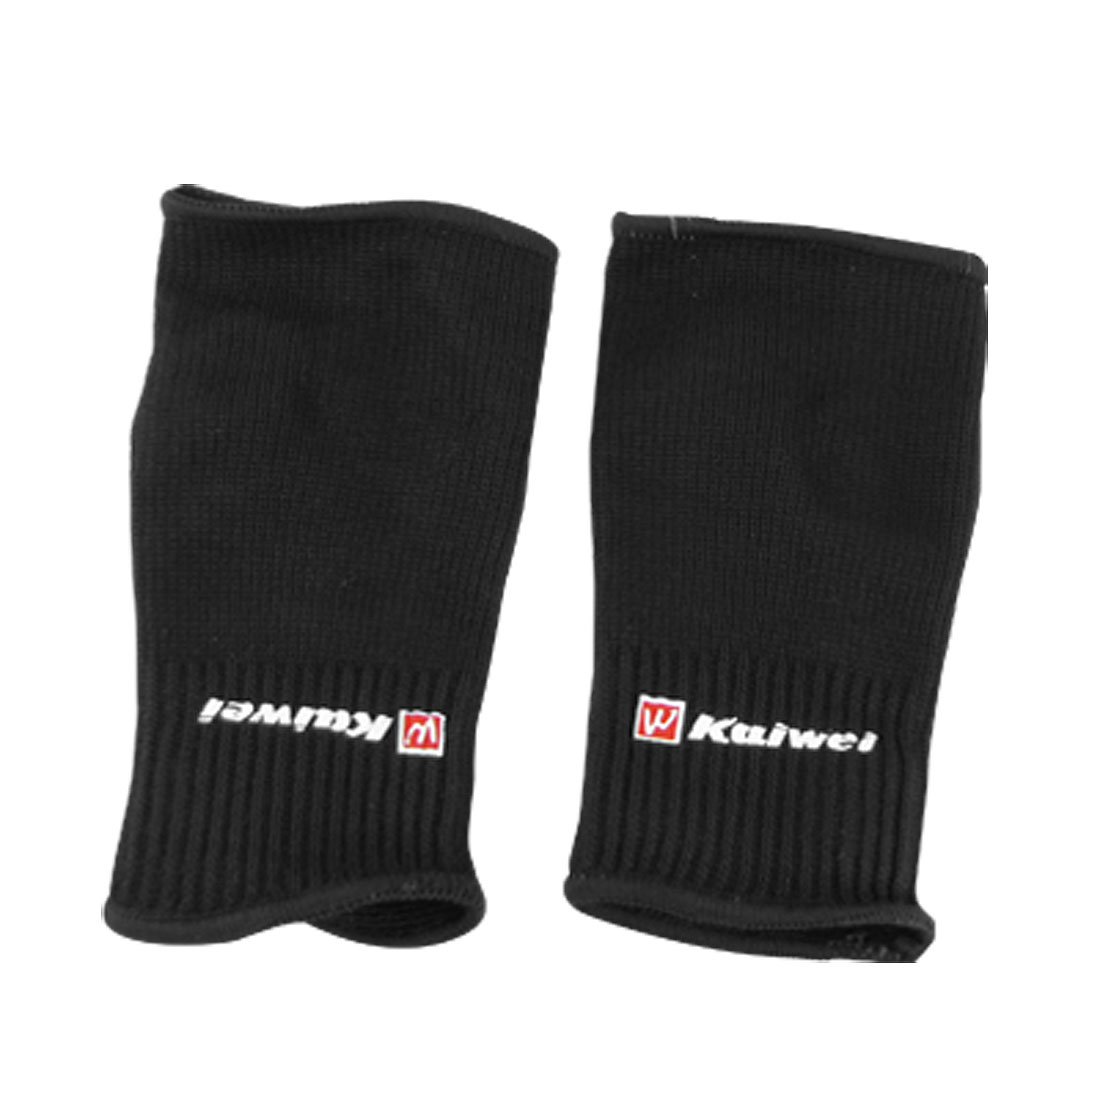 Pair Black Elastic Palm Support Brace Sports Protector